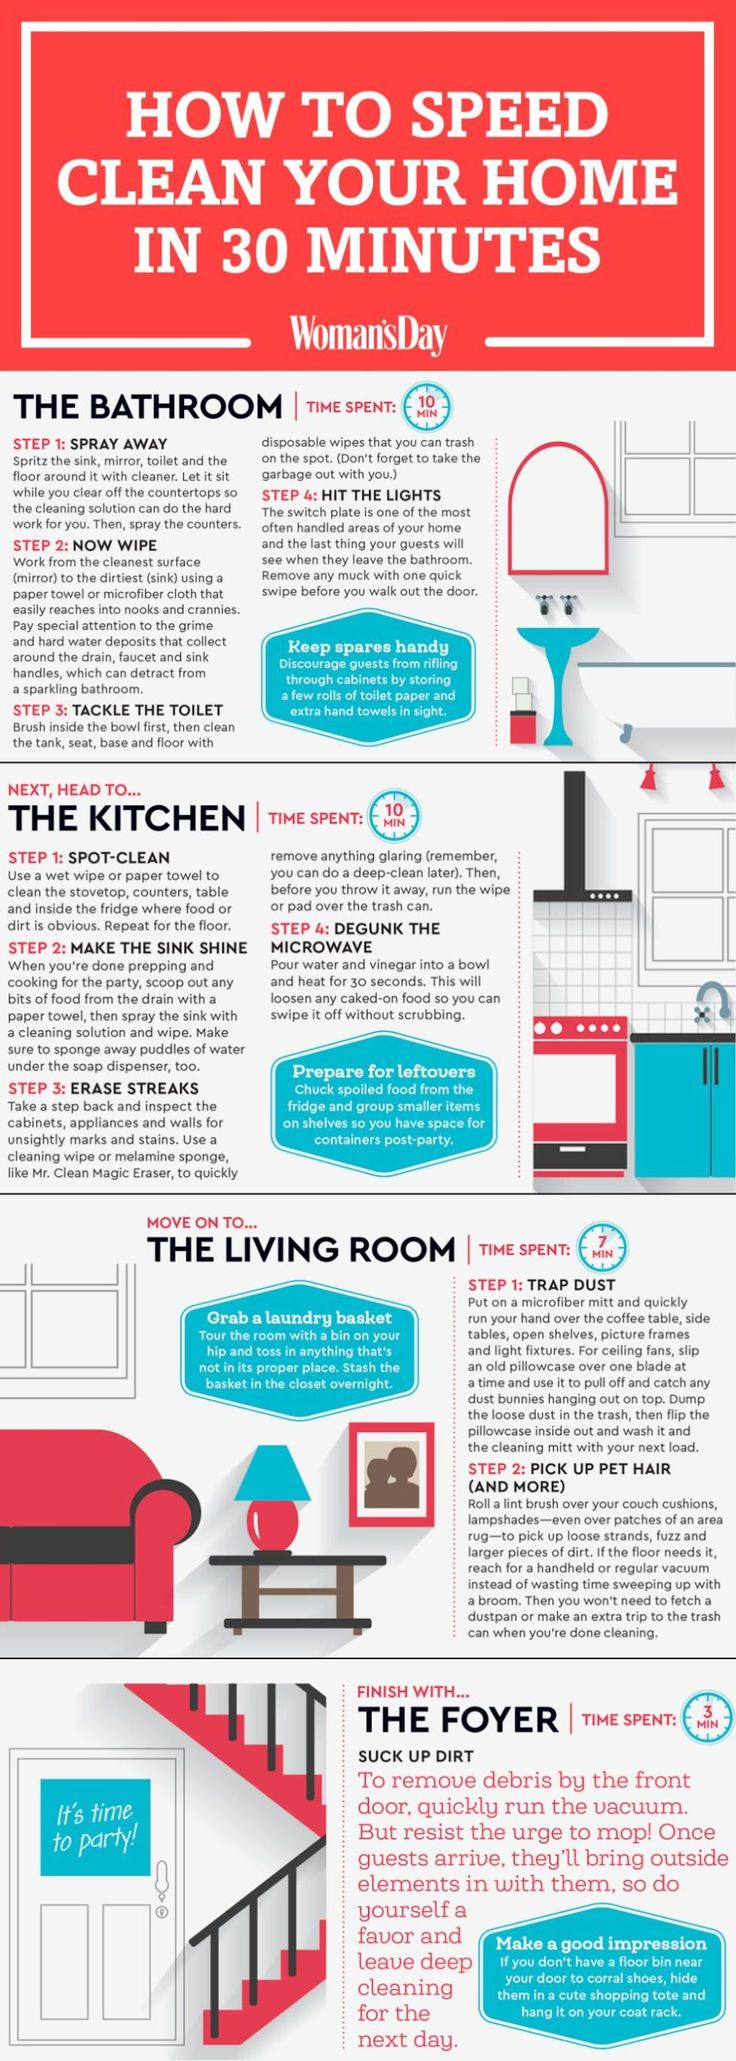 ea83a323f4faeea7cf6d362688883e6c All the 15 Graphs You Need to Clean Every Inch of Your House like A Pro | ONE DO...